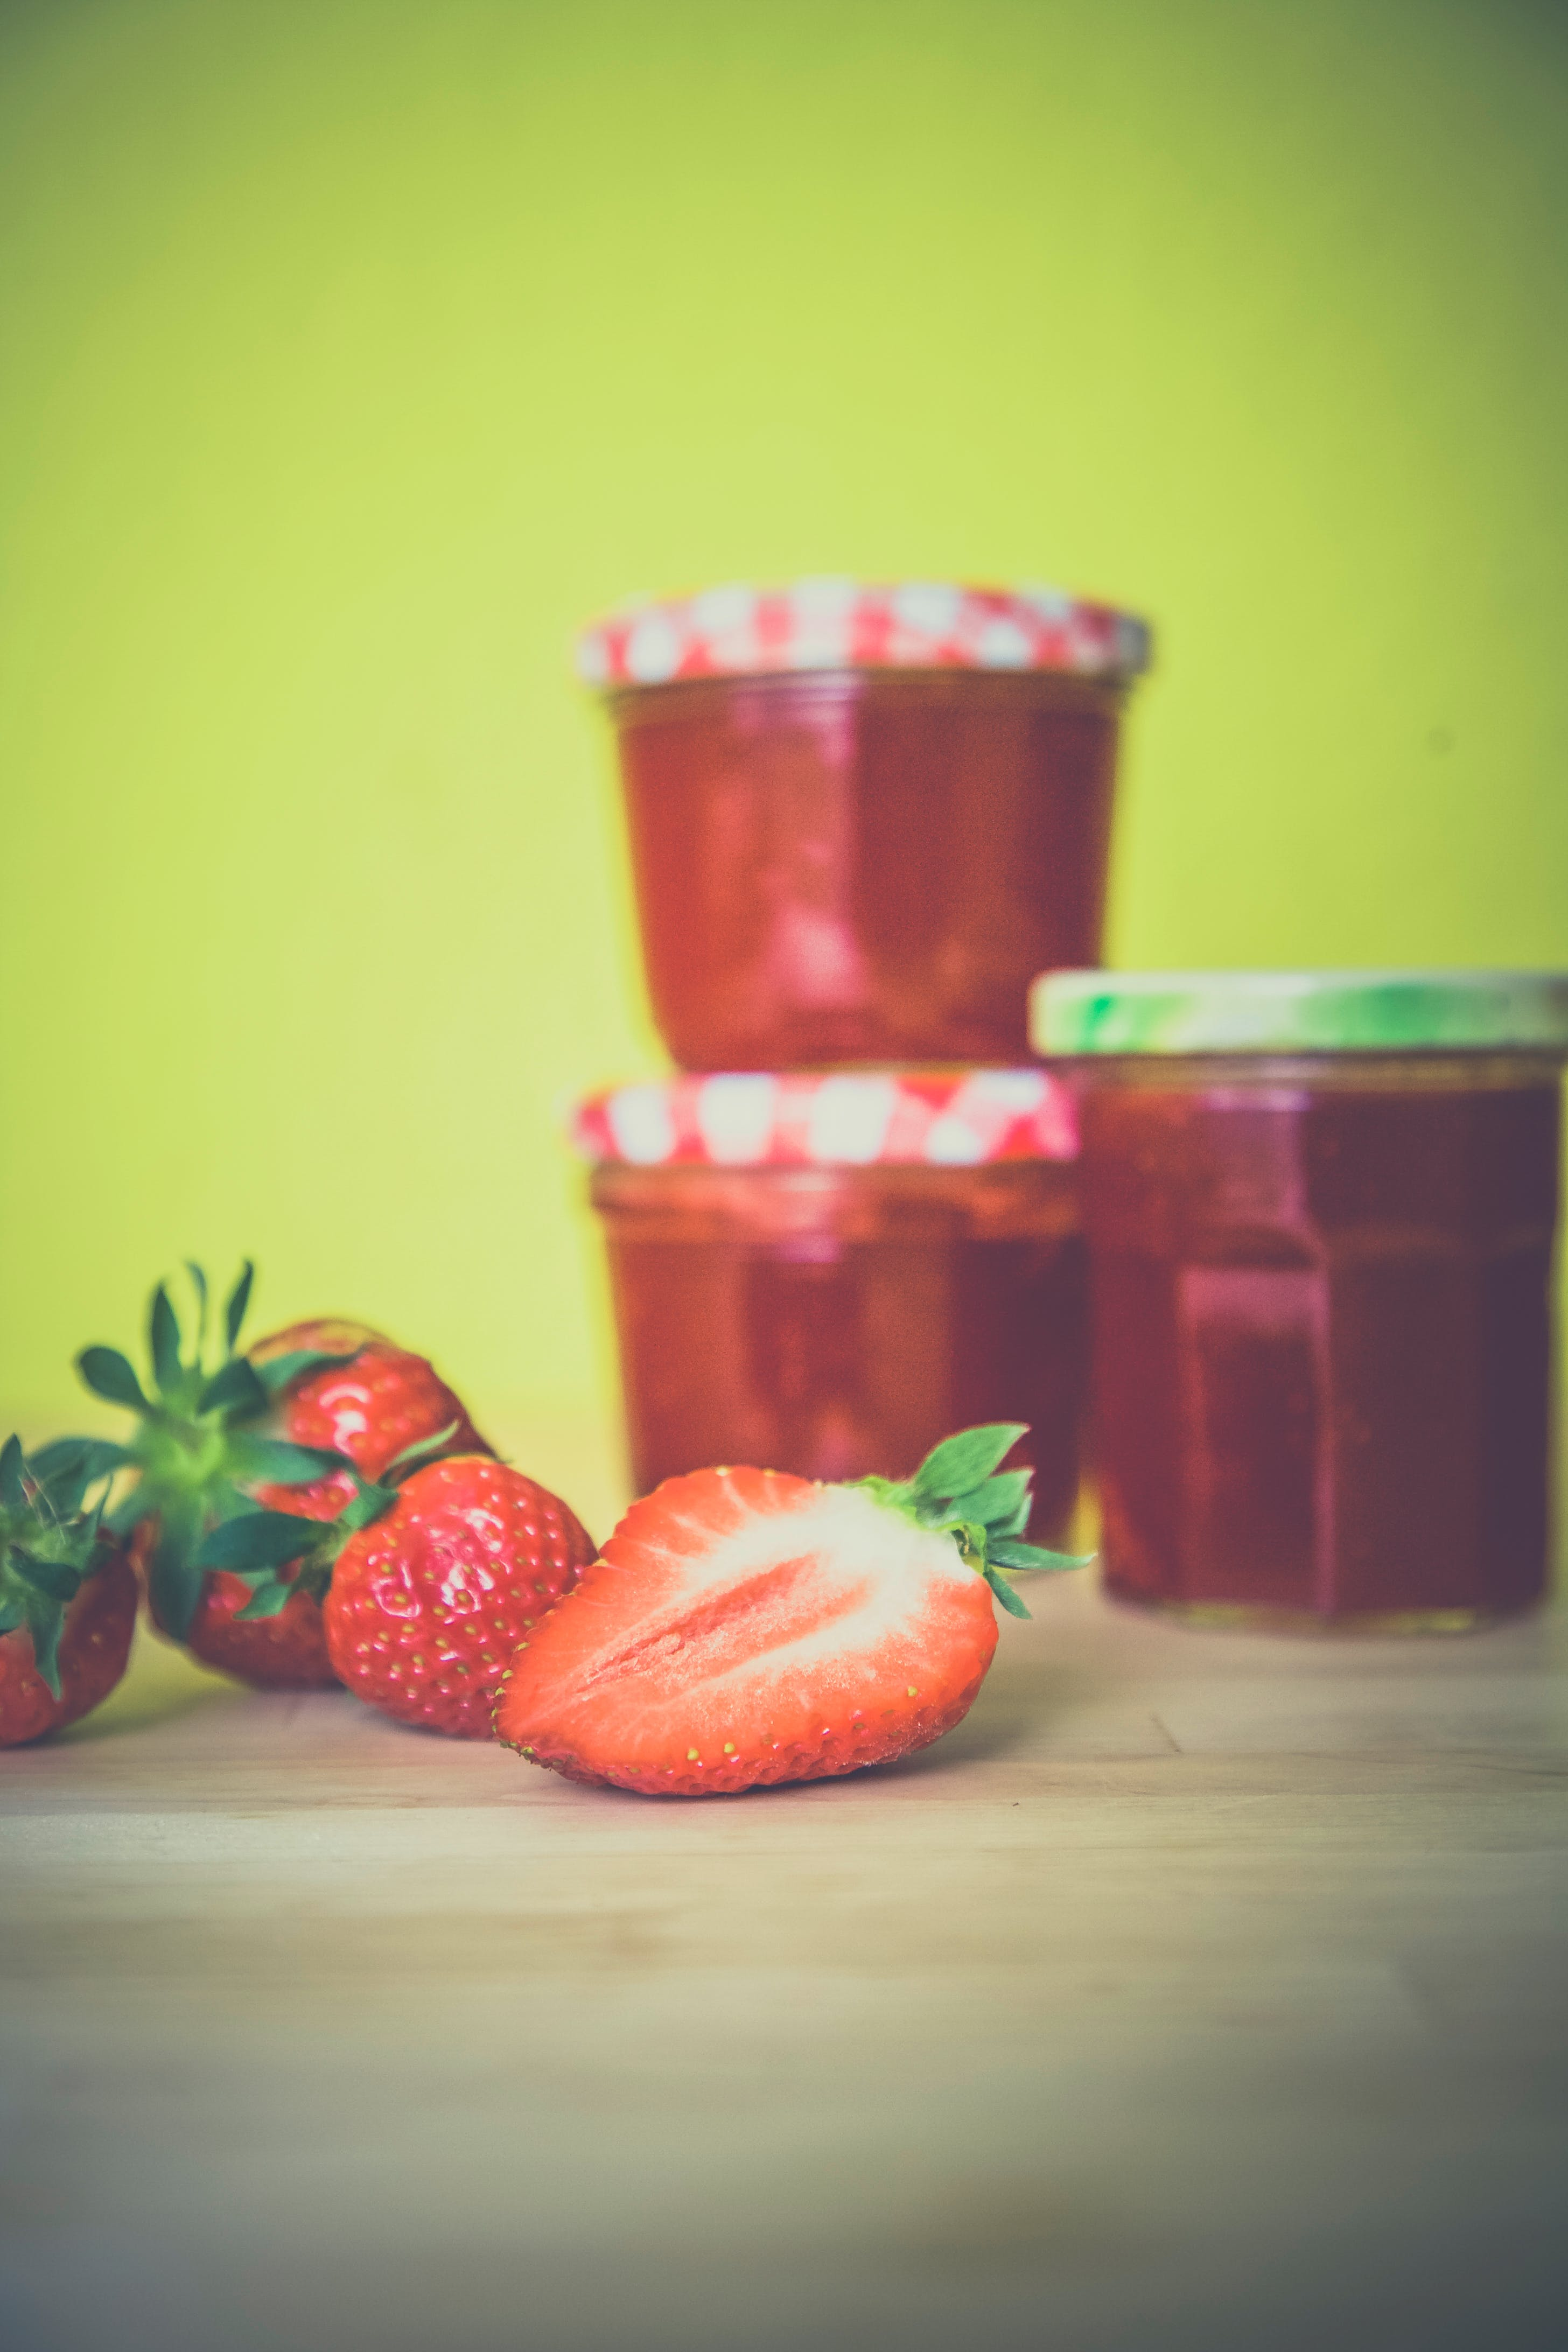 Strawberry Near Red Jar on Wooden Surface